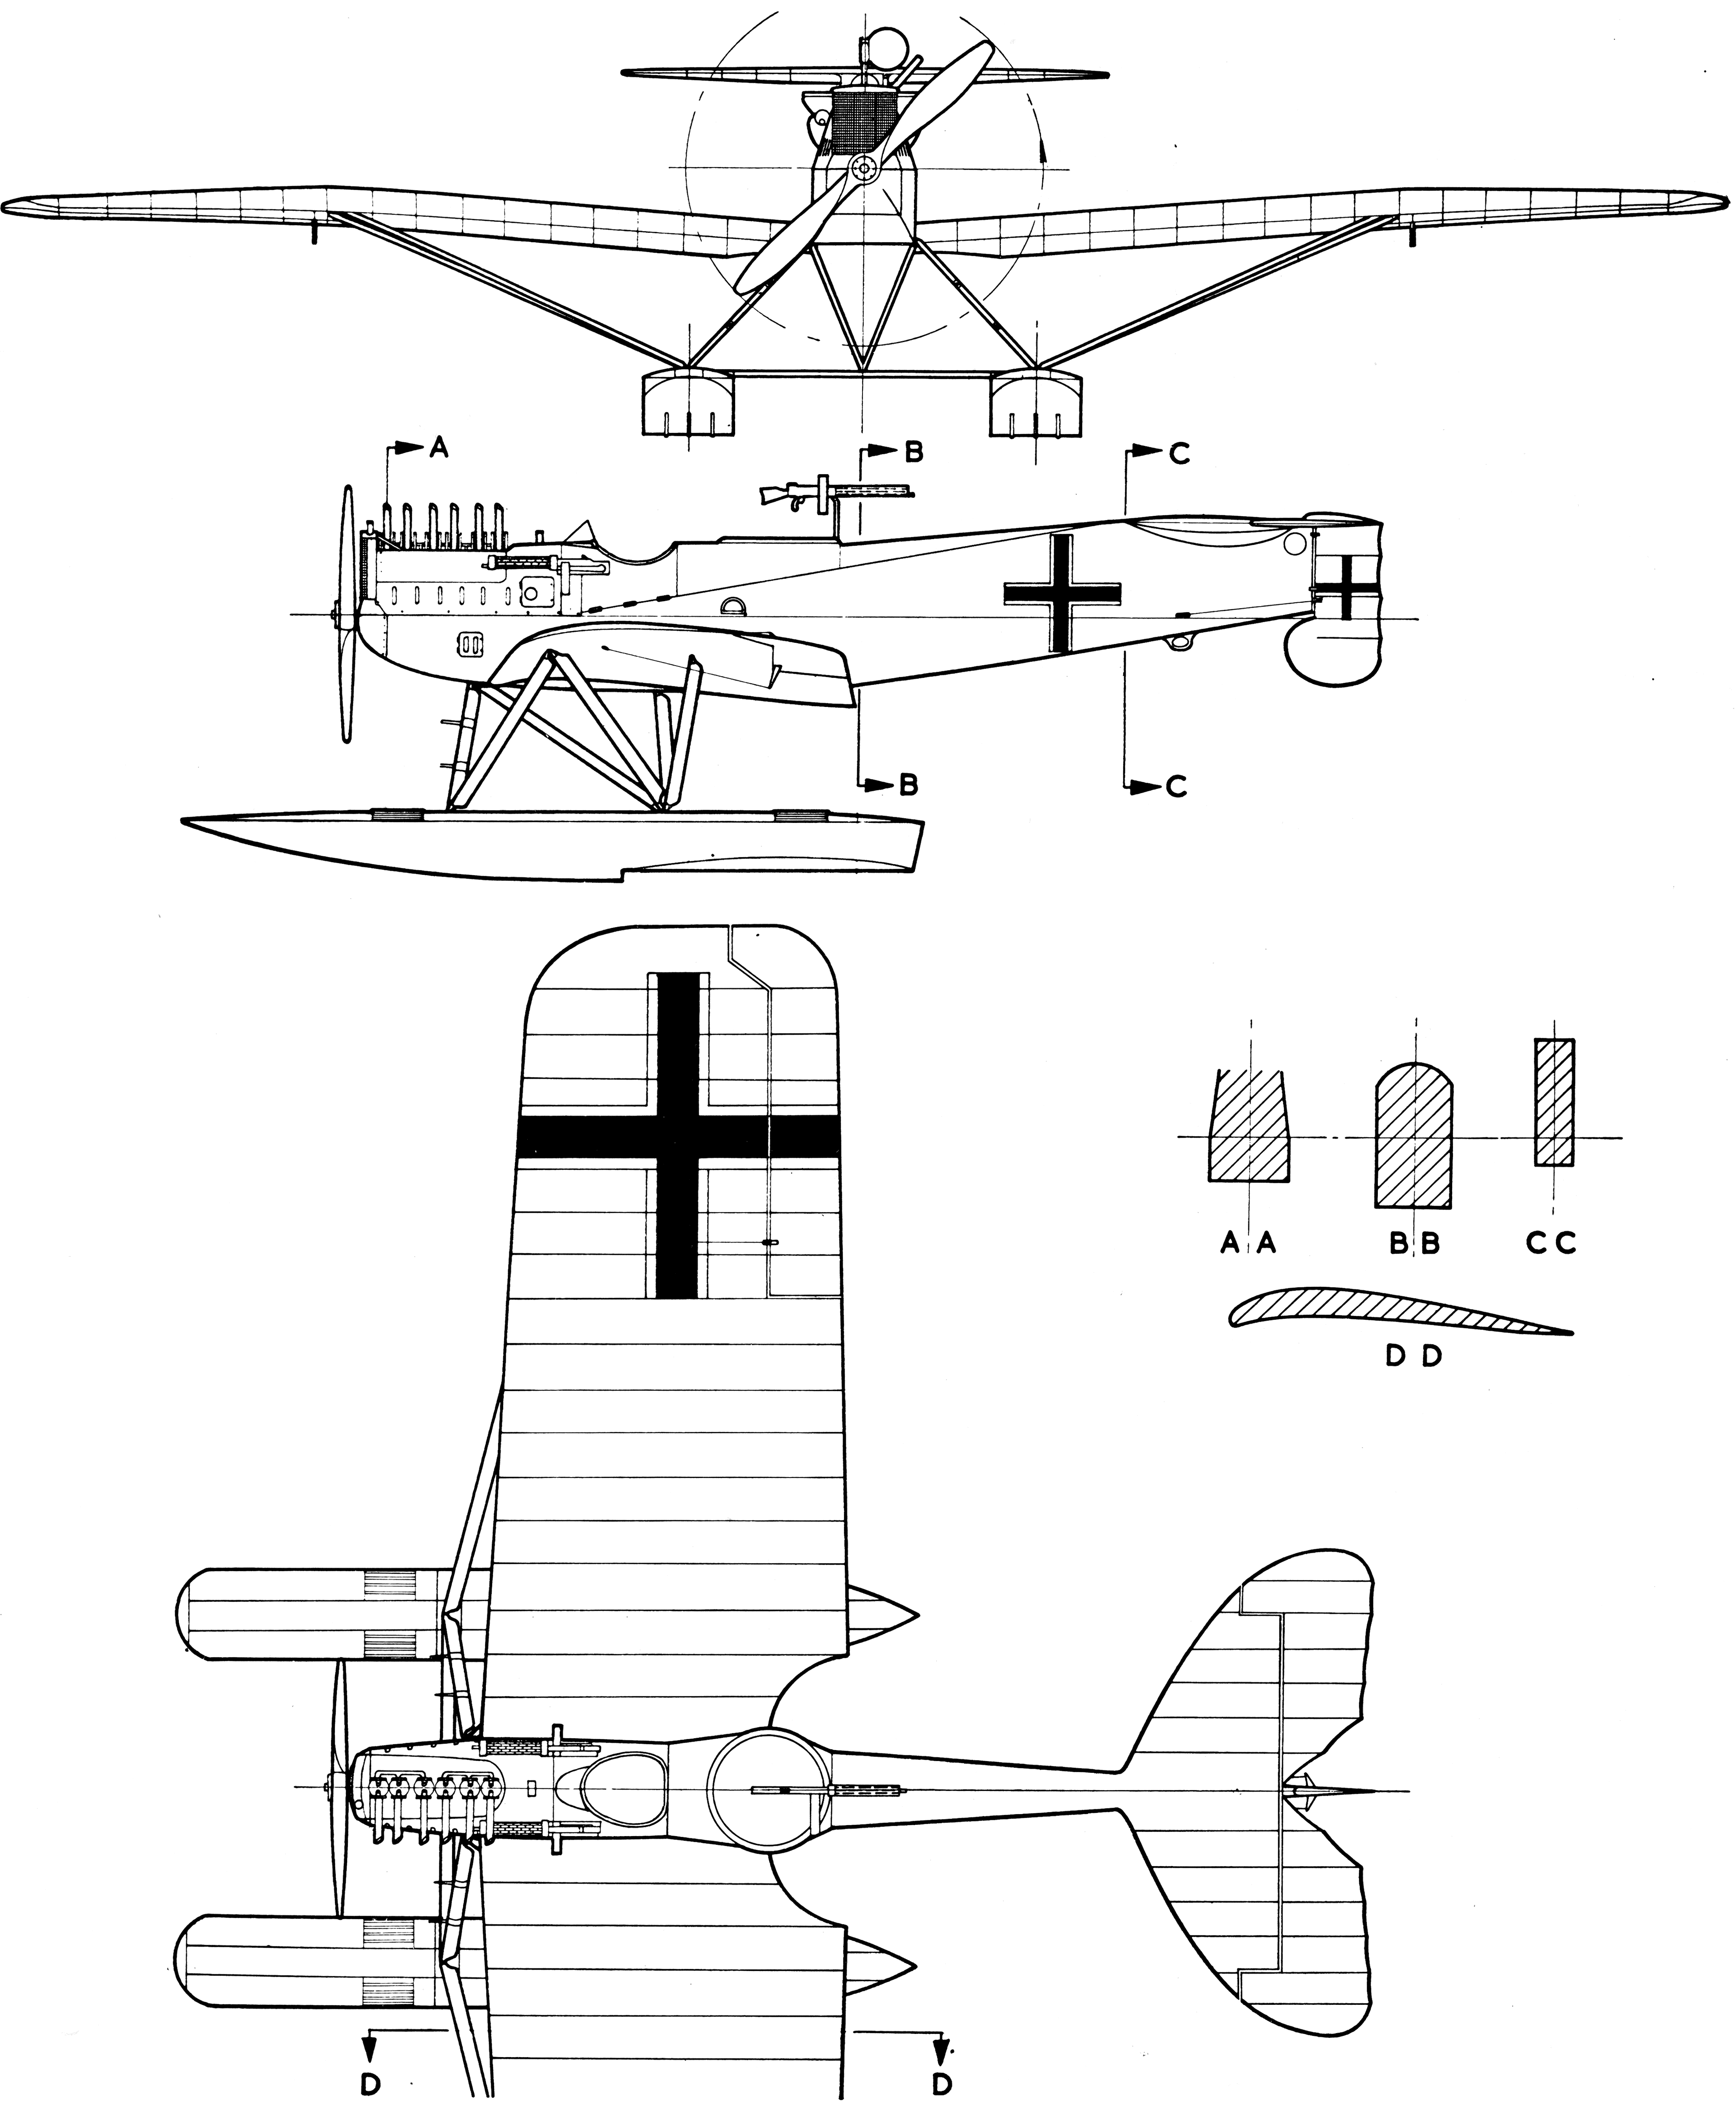 Hansa-Brandenburg W.29 blueprint